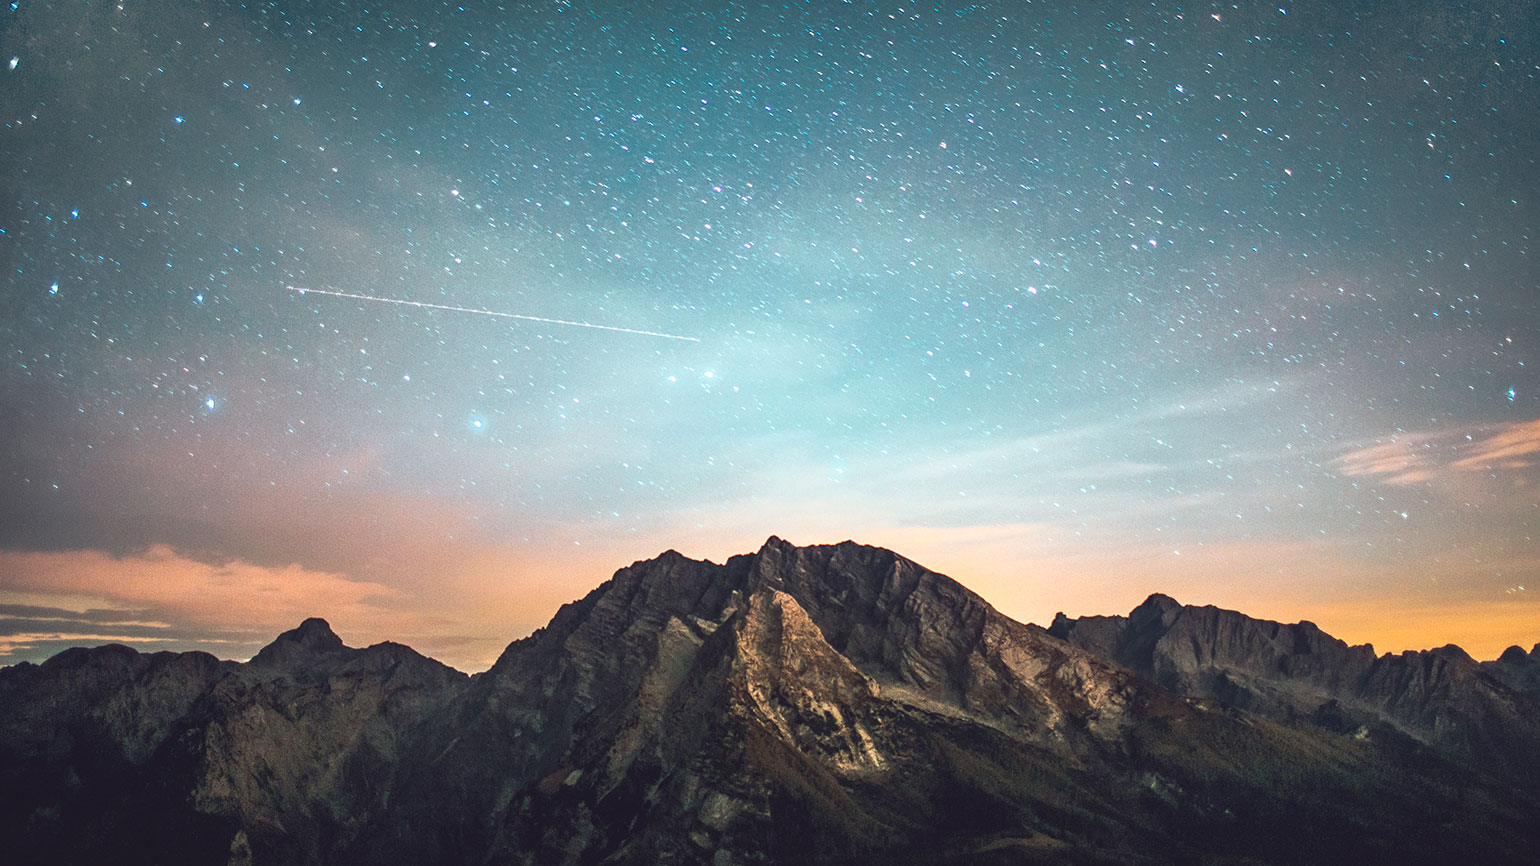 A mountain under a starlit sky